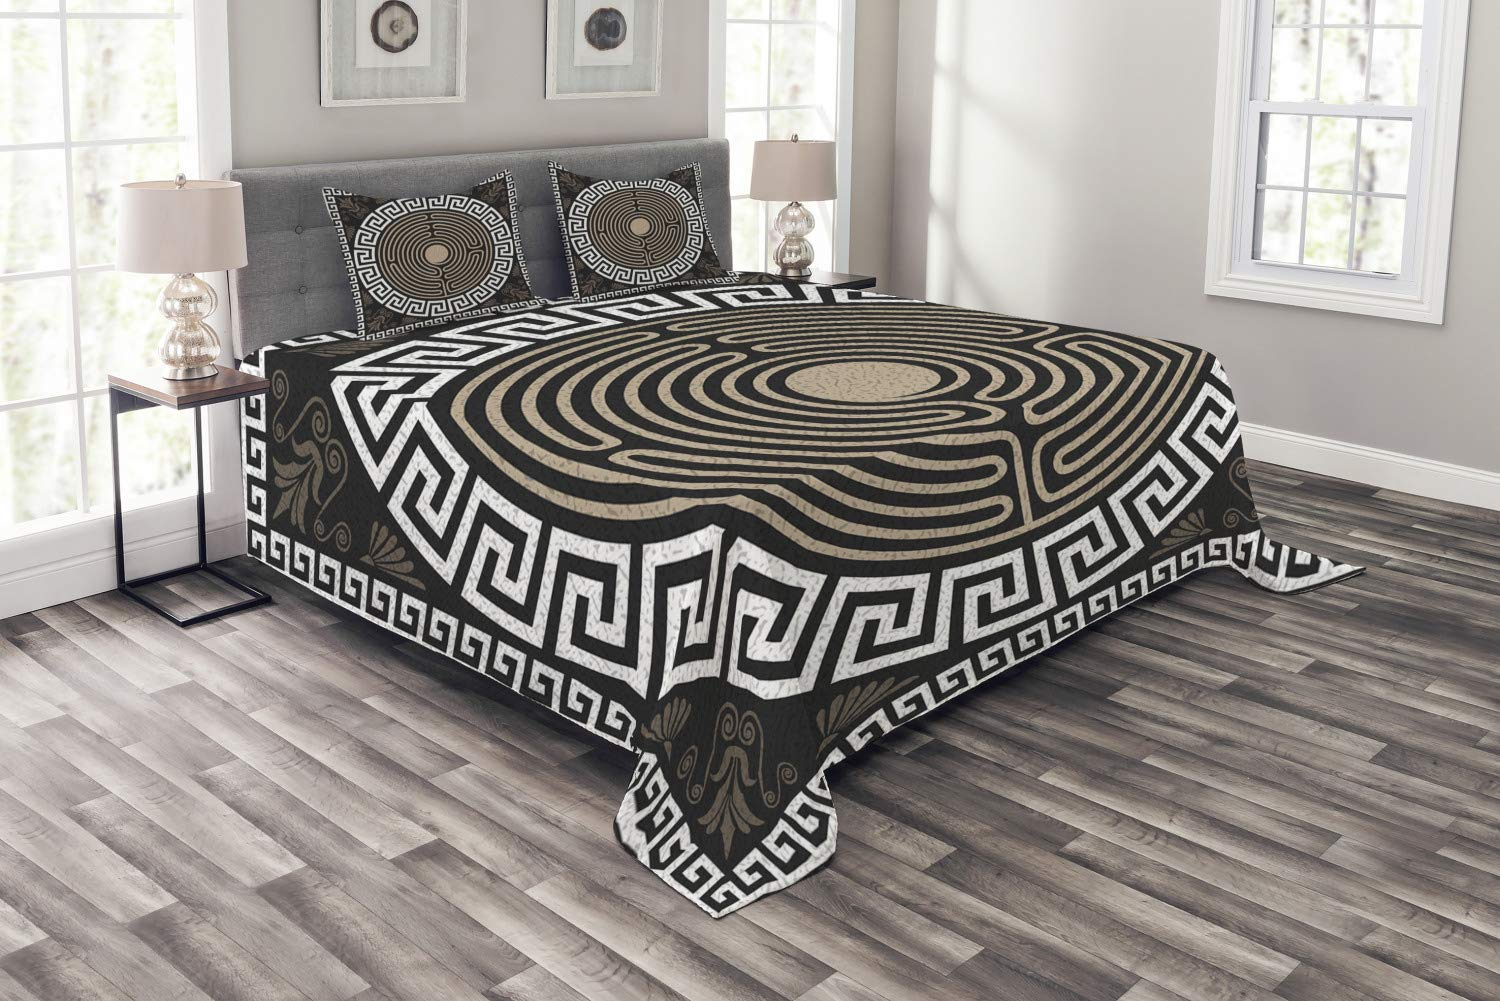 Ambesonne Greek Key Bedspread, Grecian Fret and Wave Pattern on Dark Background Antique Retro Swirls, Decorative Quilted 3 Piece Coverlet Set with 2 Pillow Shams, Queen Size, Brown Coconut